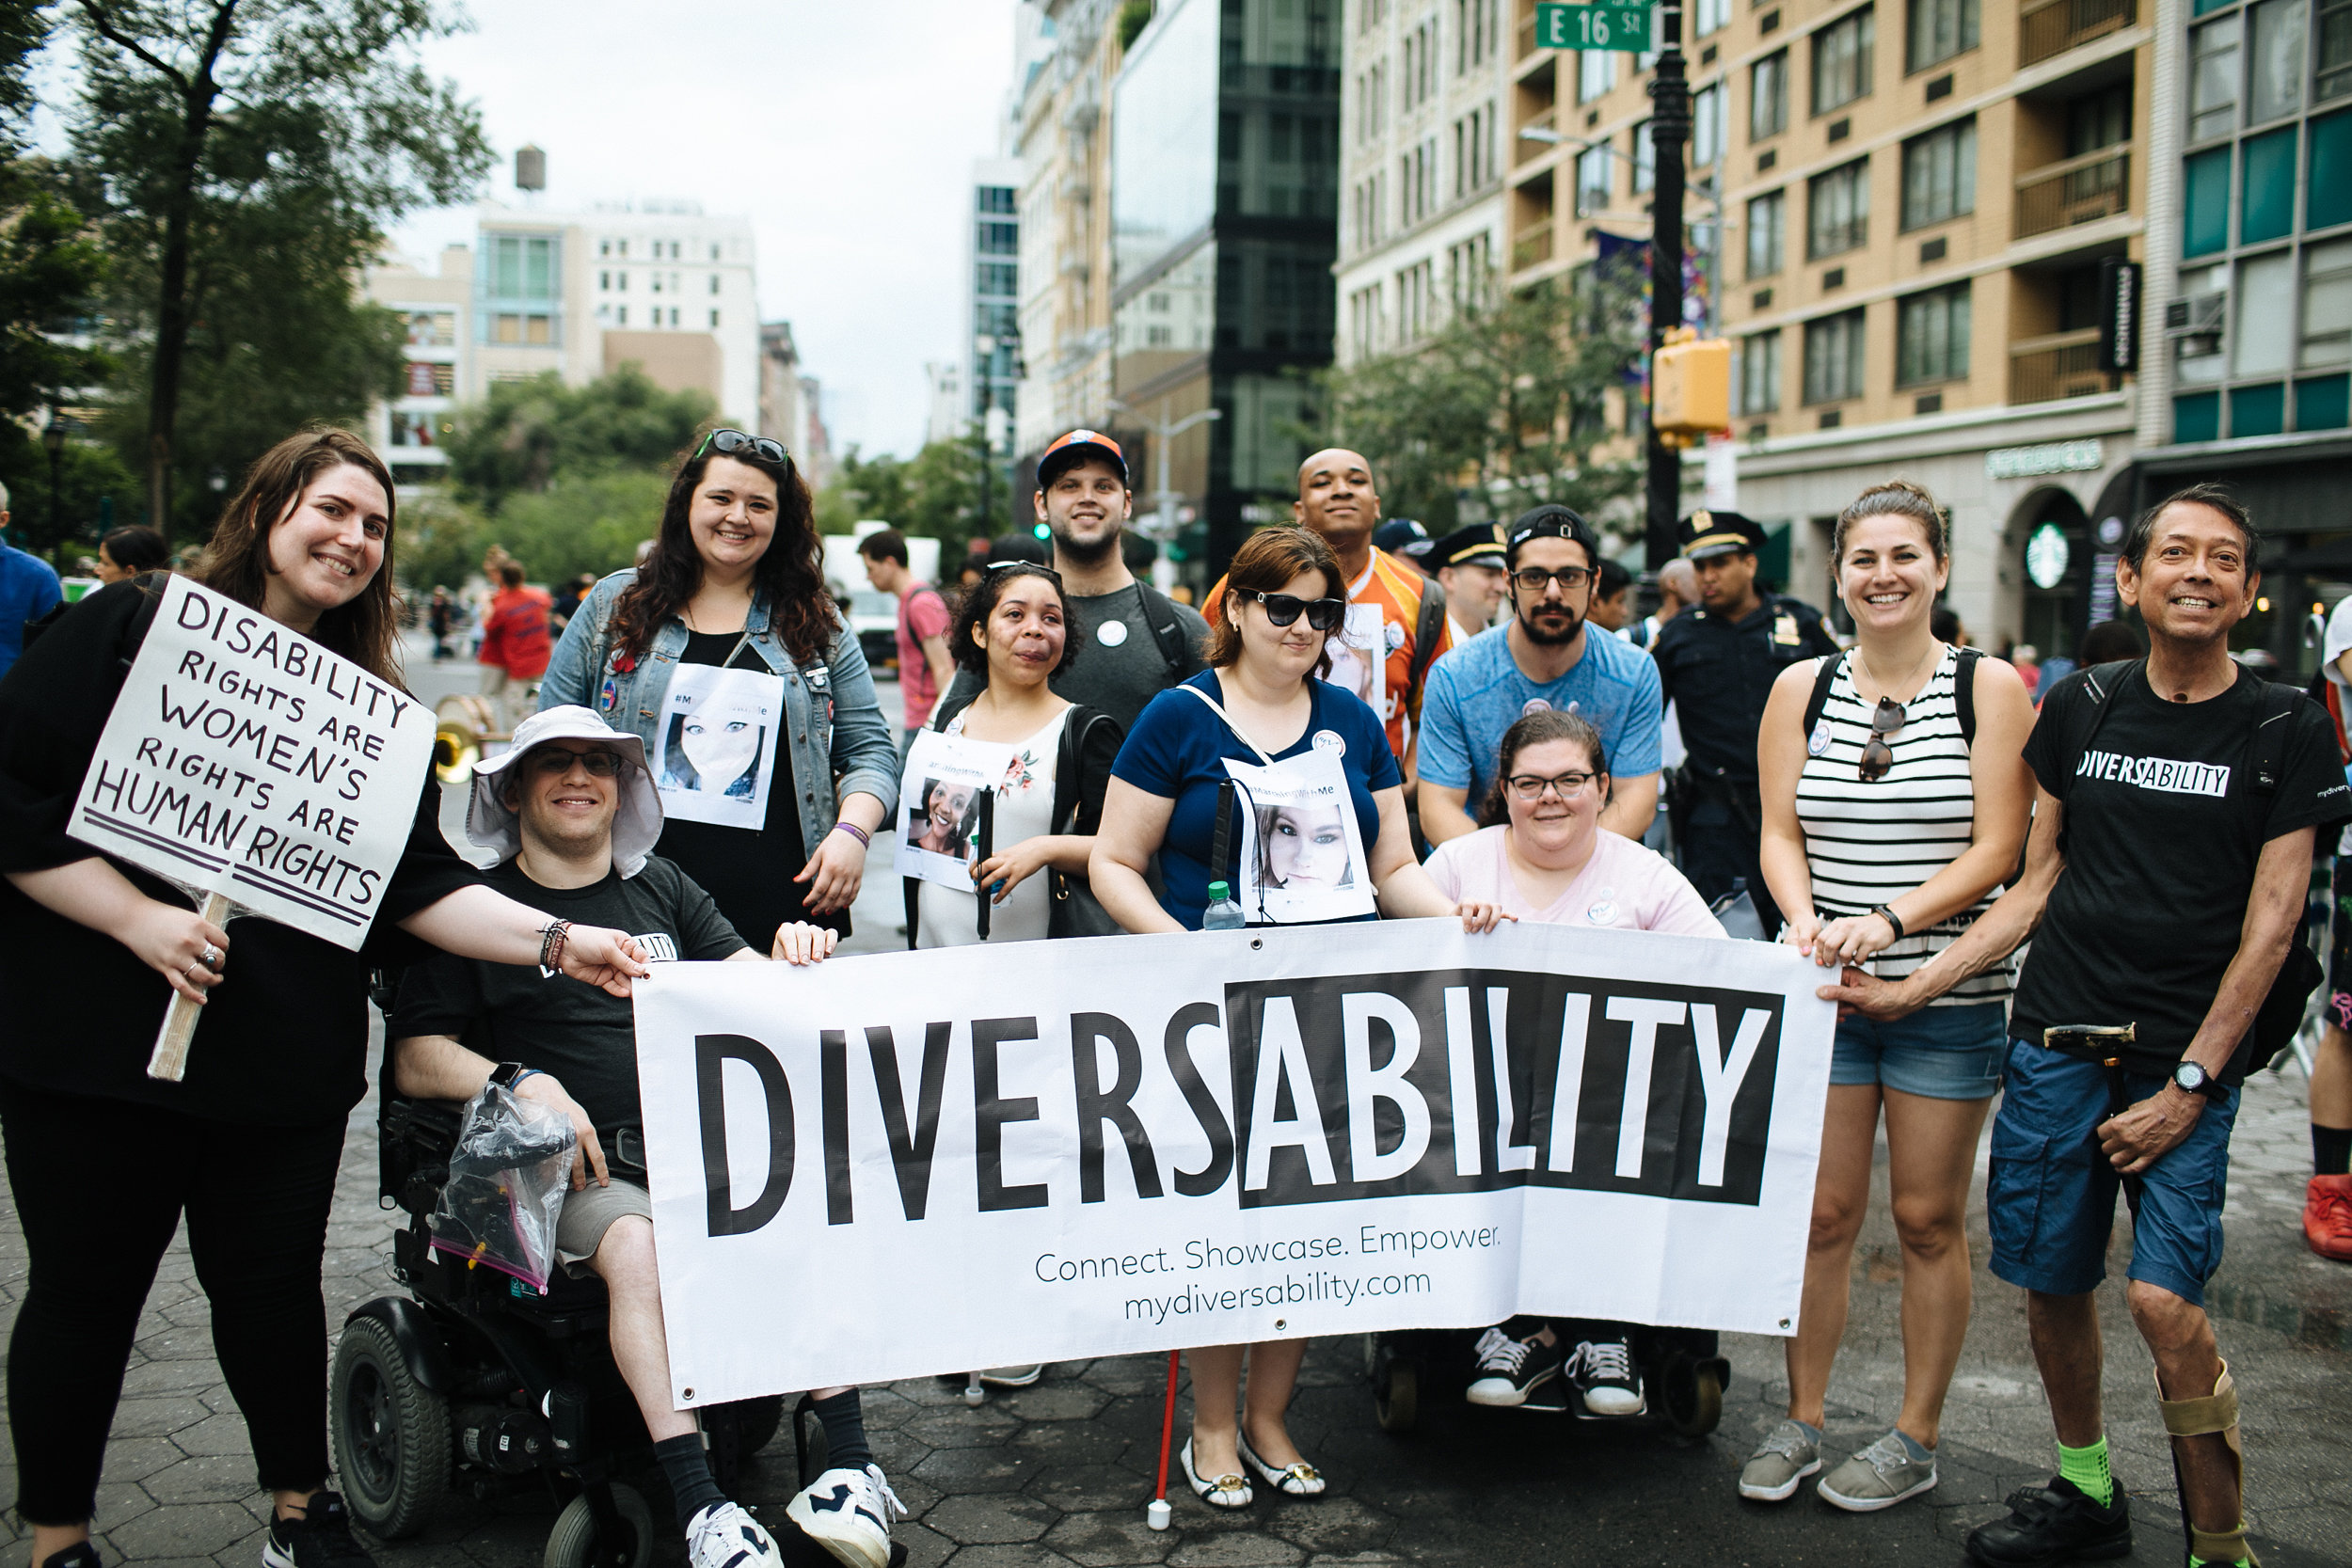 Diversability community members pose for a picture at the parade.